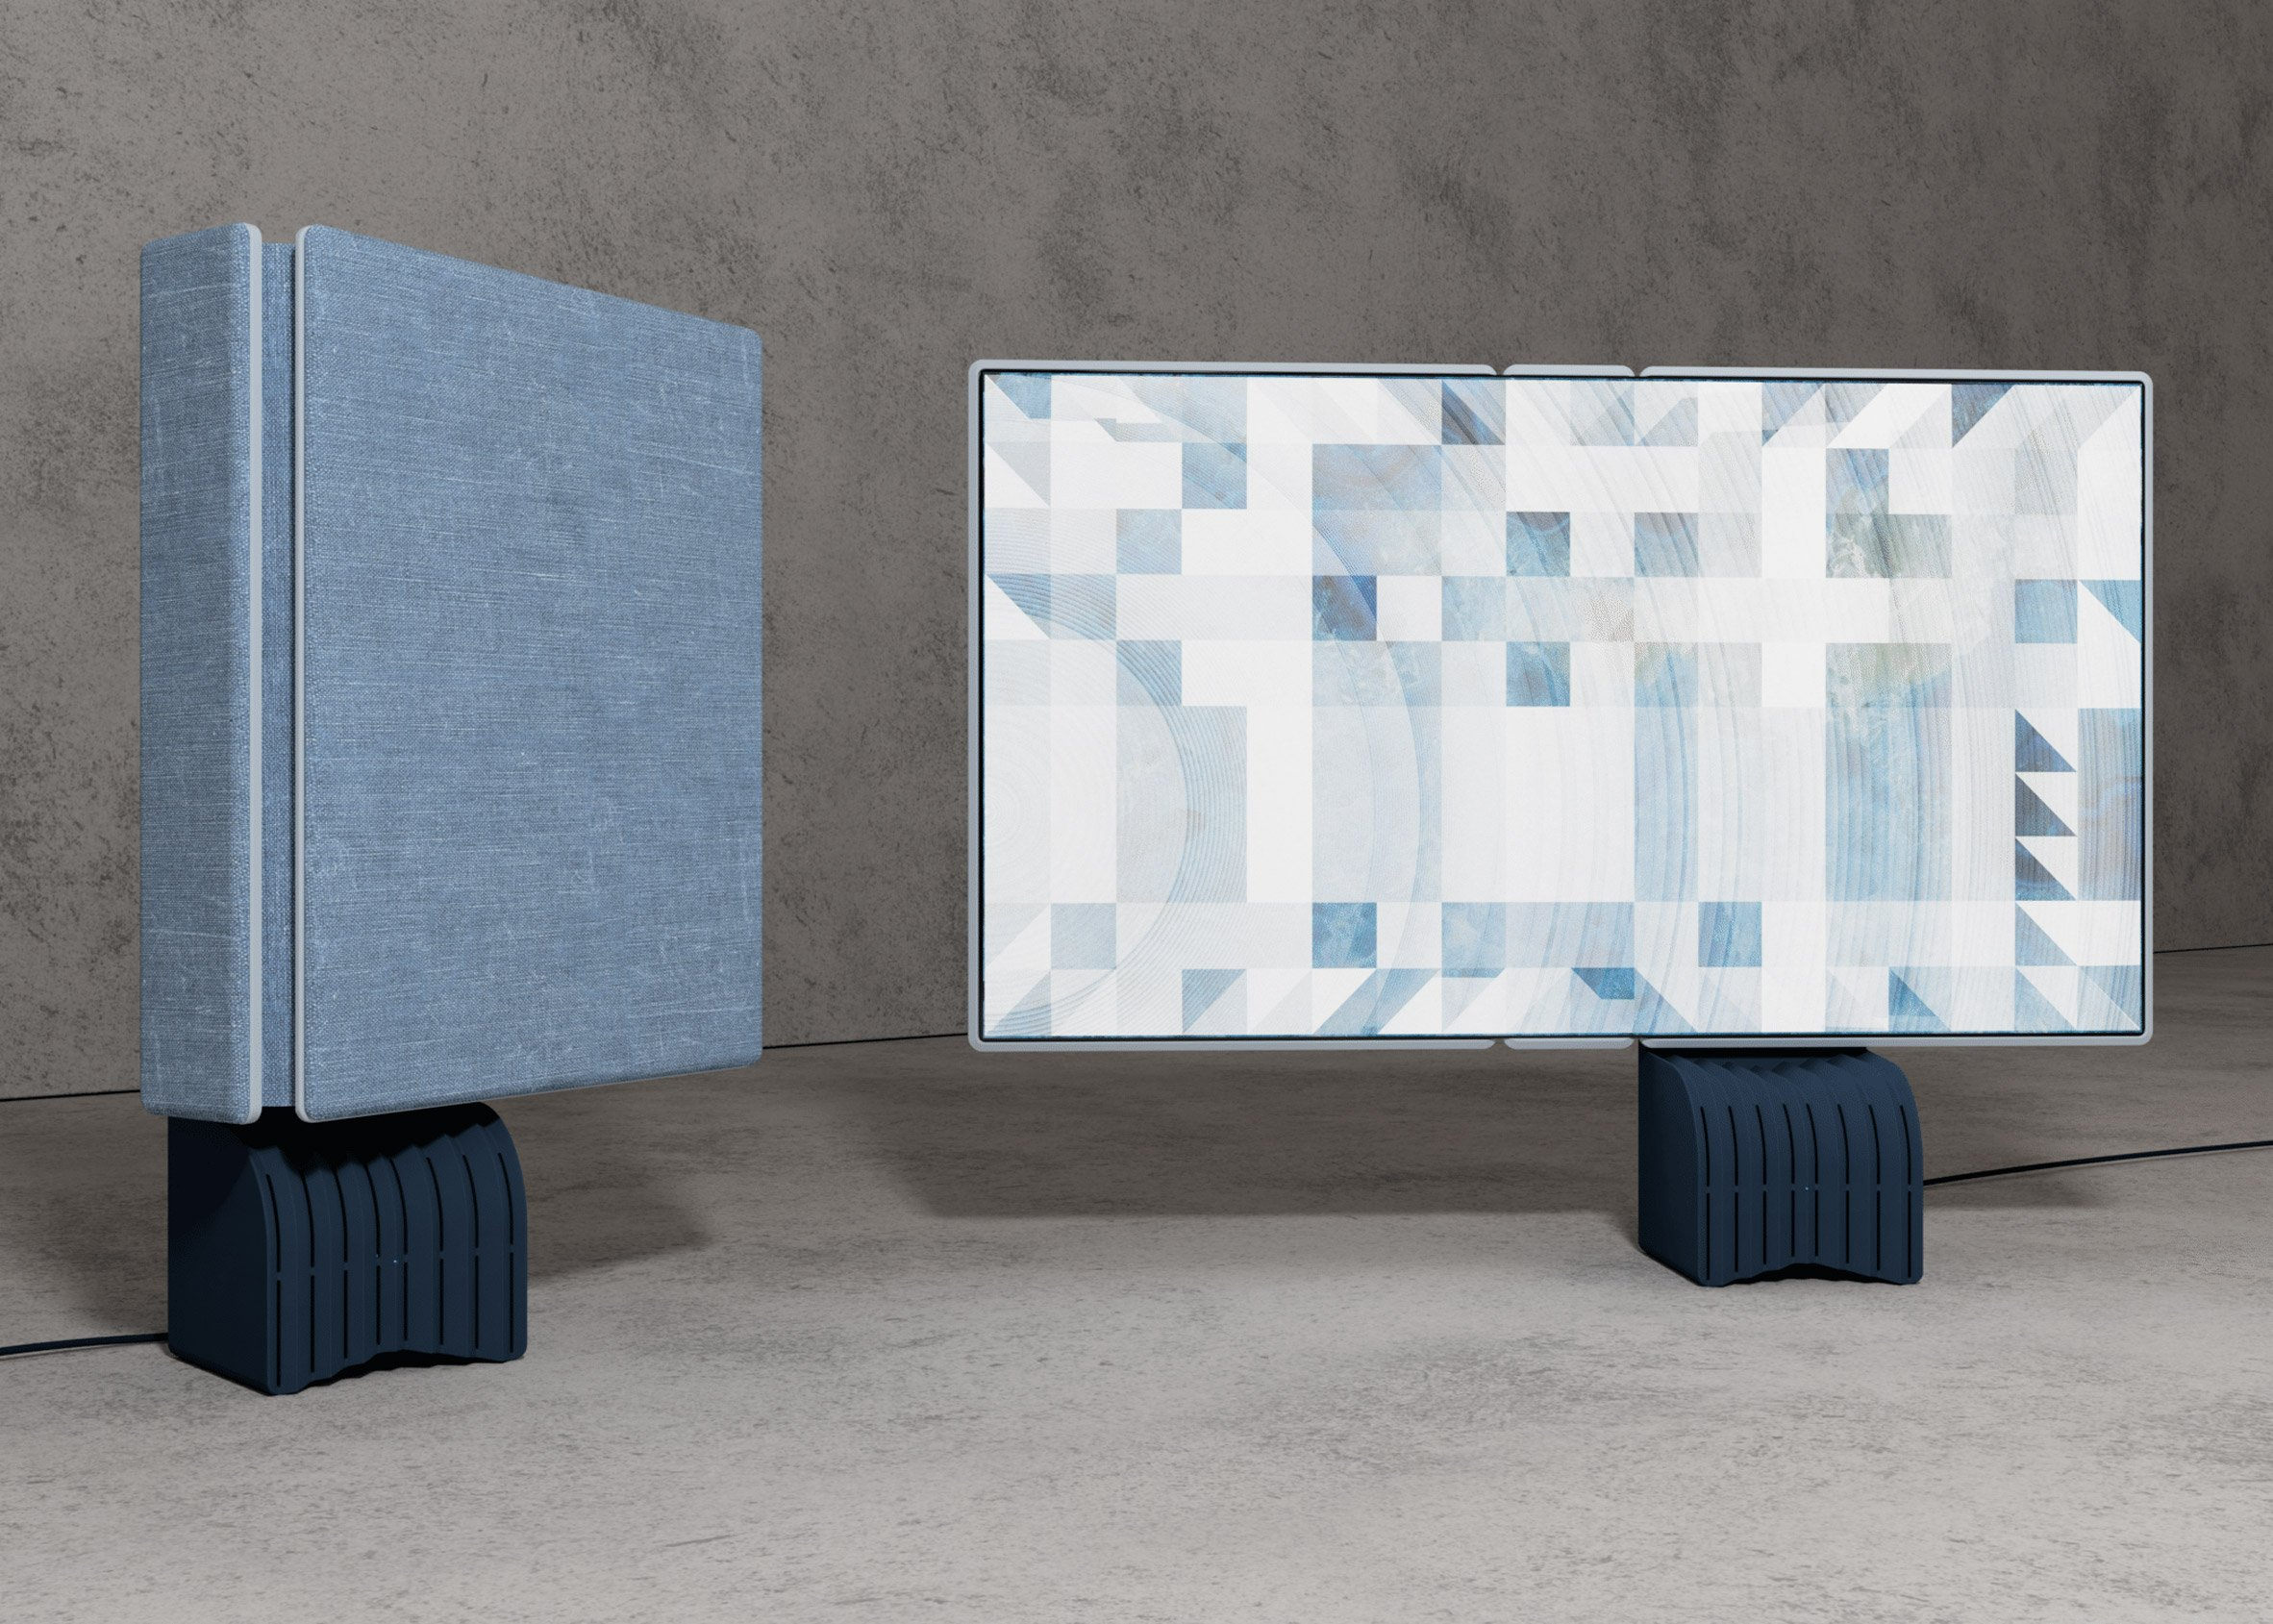 Signal by Jean-Michel Rochette was awarded second place in the OLEDs Go! competition